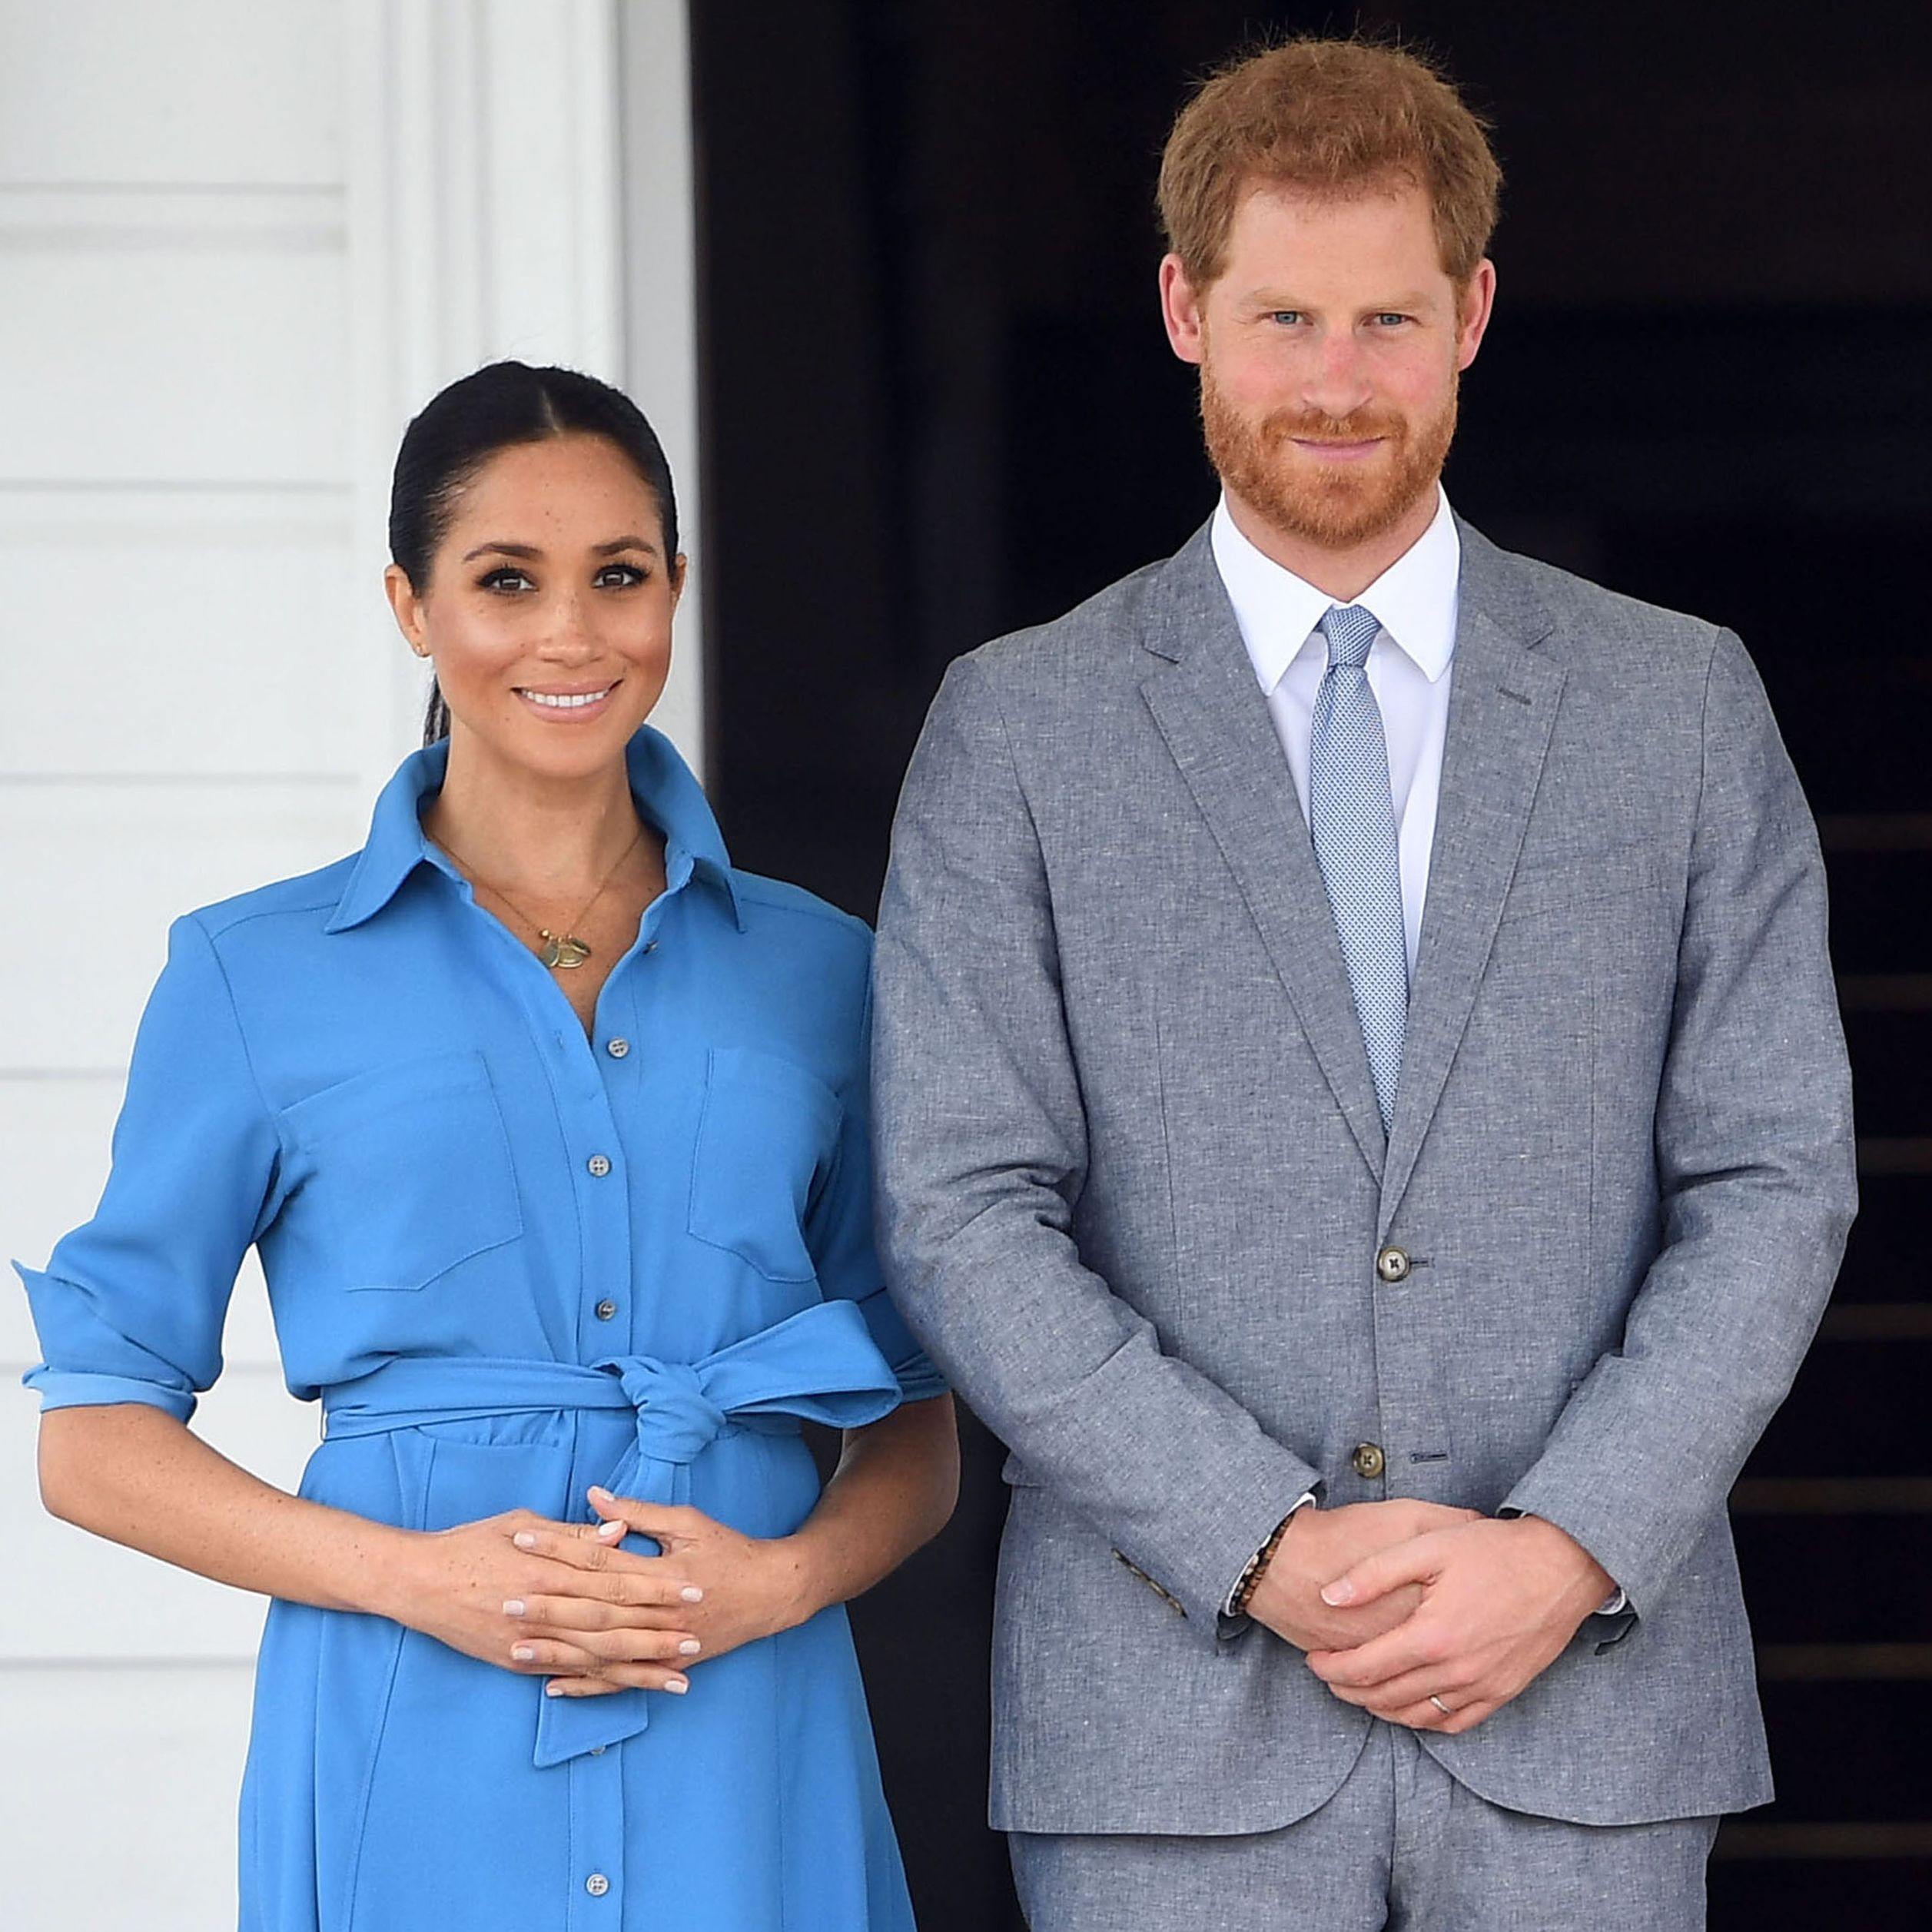 Meghan Markle and Prince Harry's Live Wax Figures Are Seriously Freaky